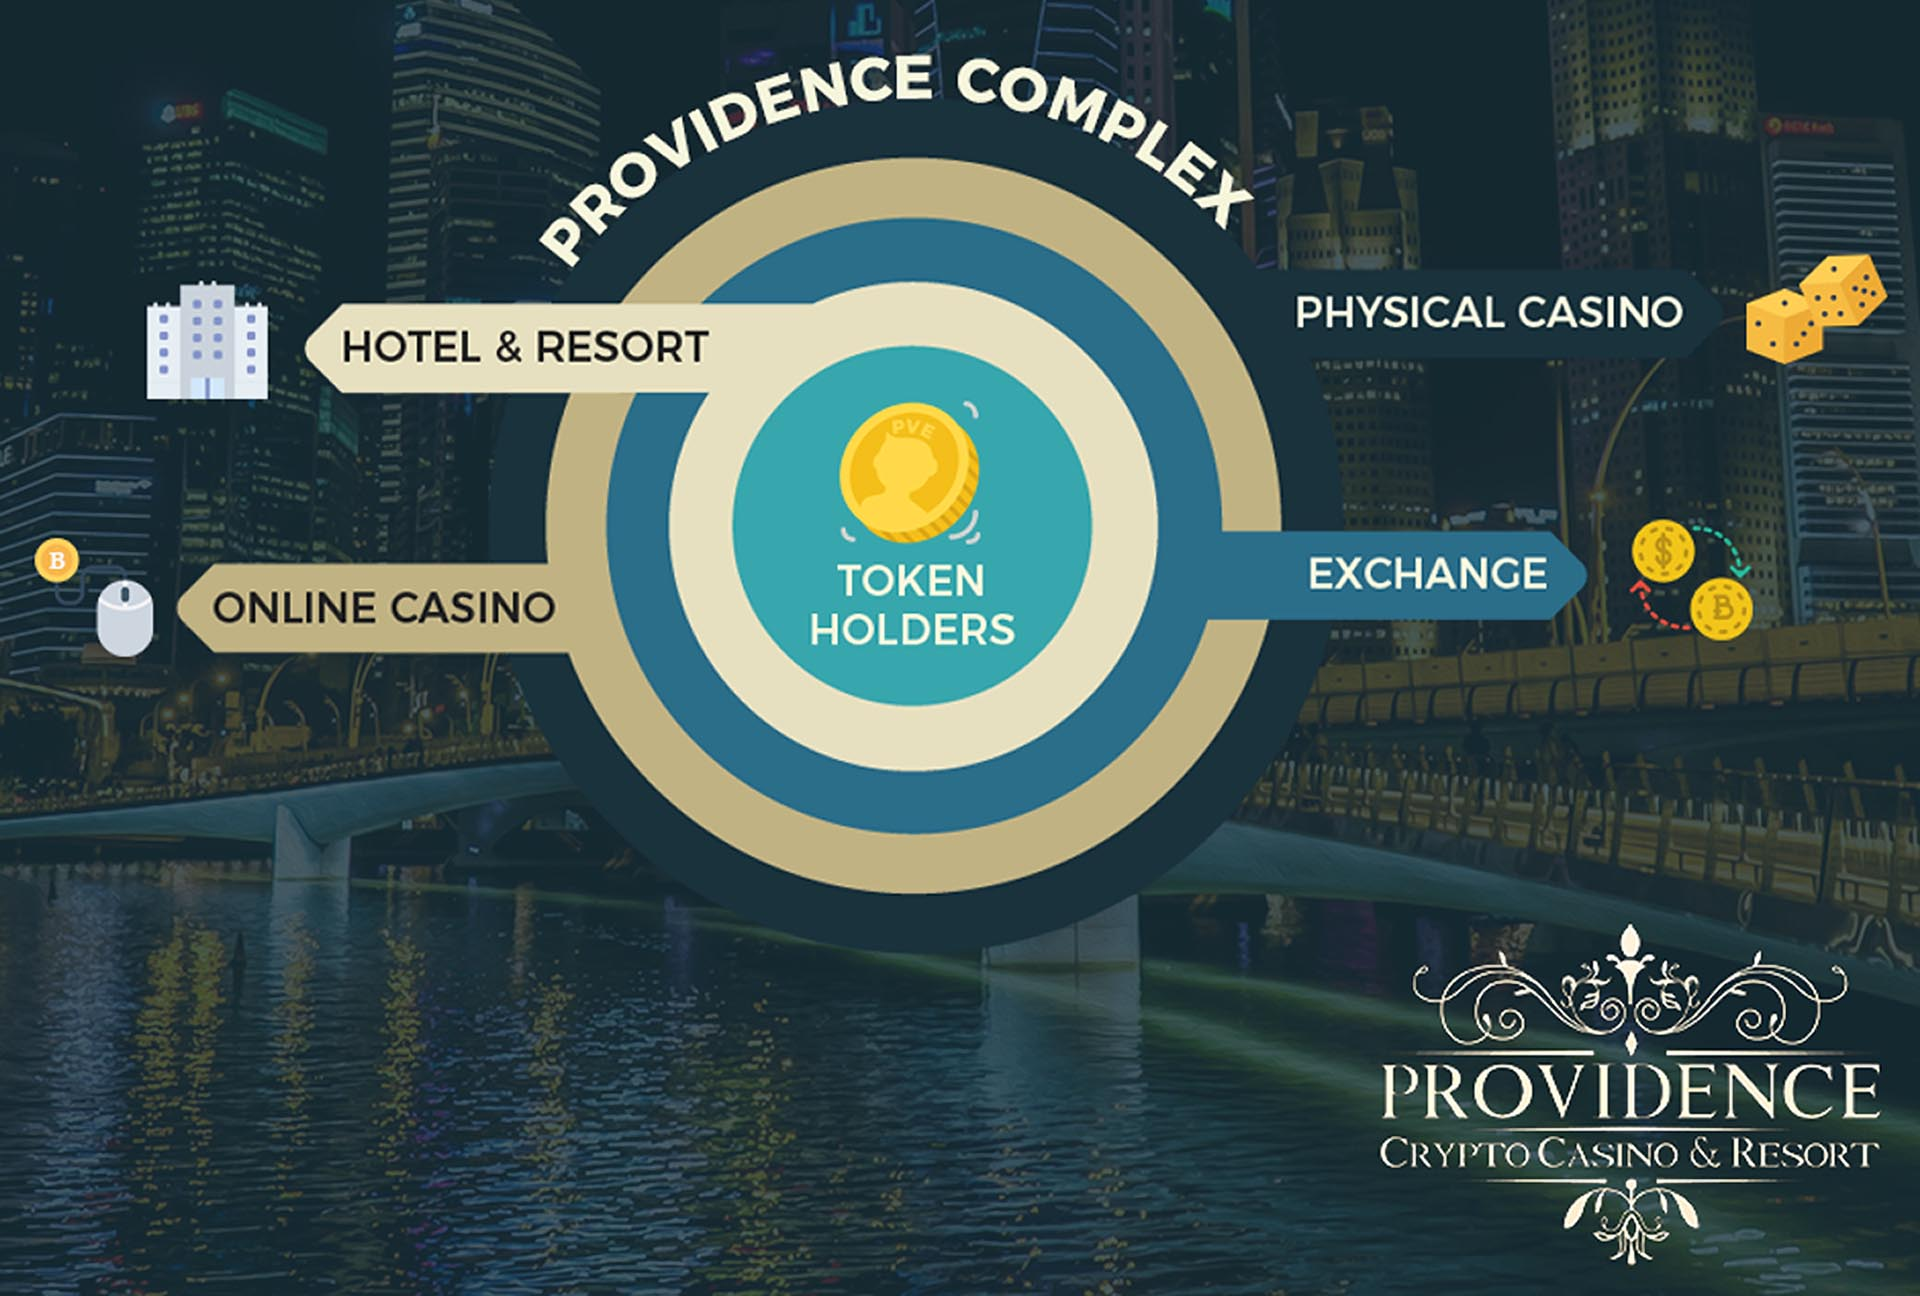 Providence - 100% Cashless Physical Casino and Resort